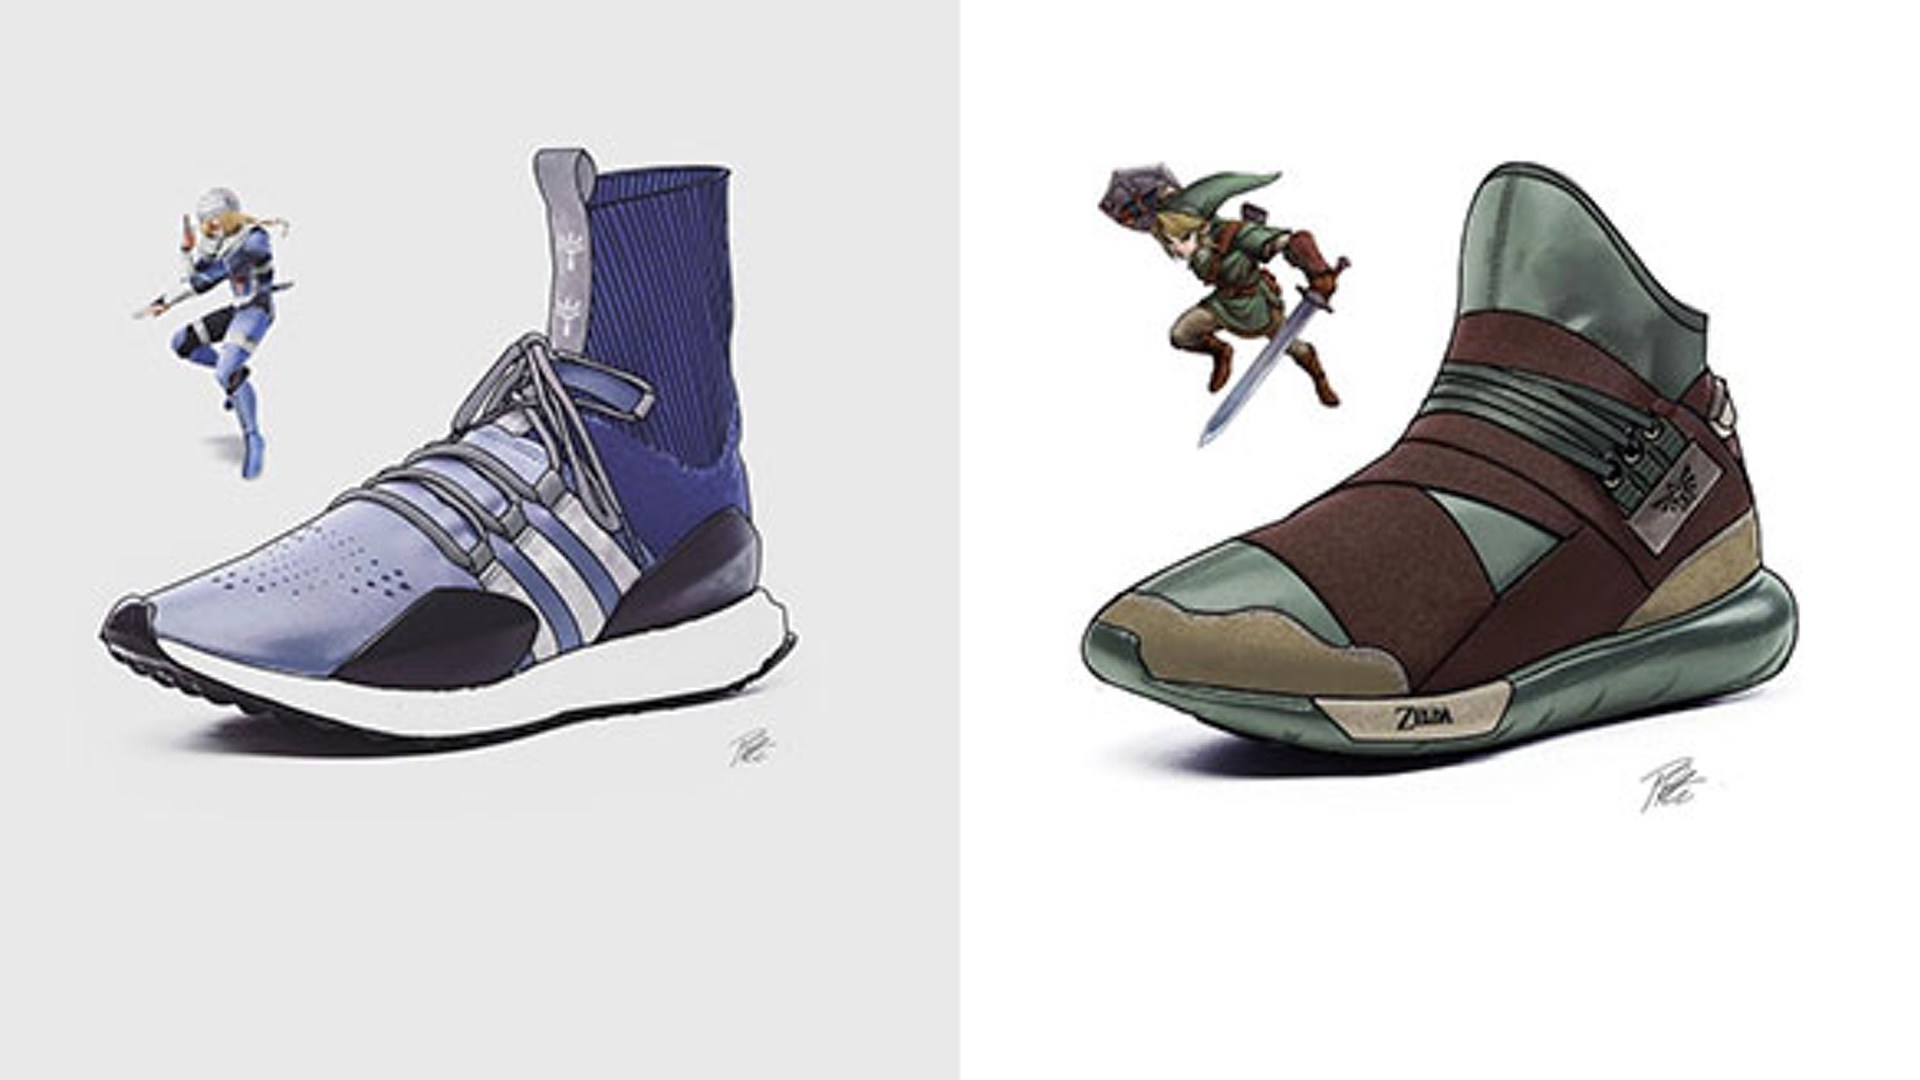 6c0bc052d1d3fa These LEGEND OF ZELDA Shoe Designs Need to Exist! — GeekTyrant